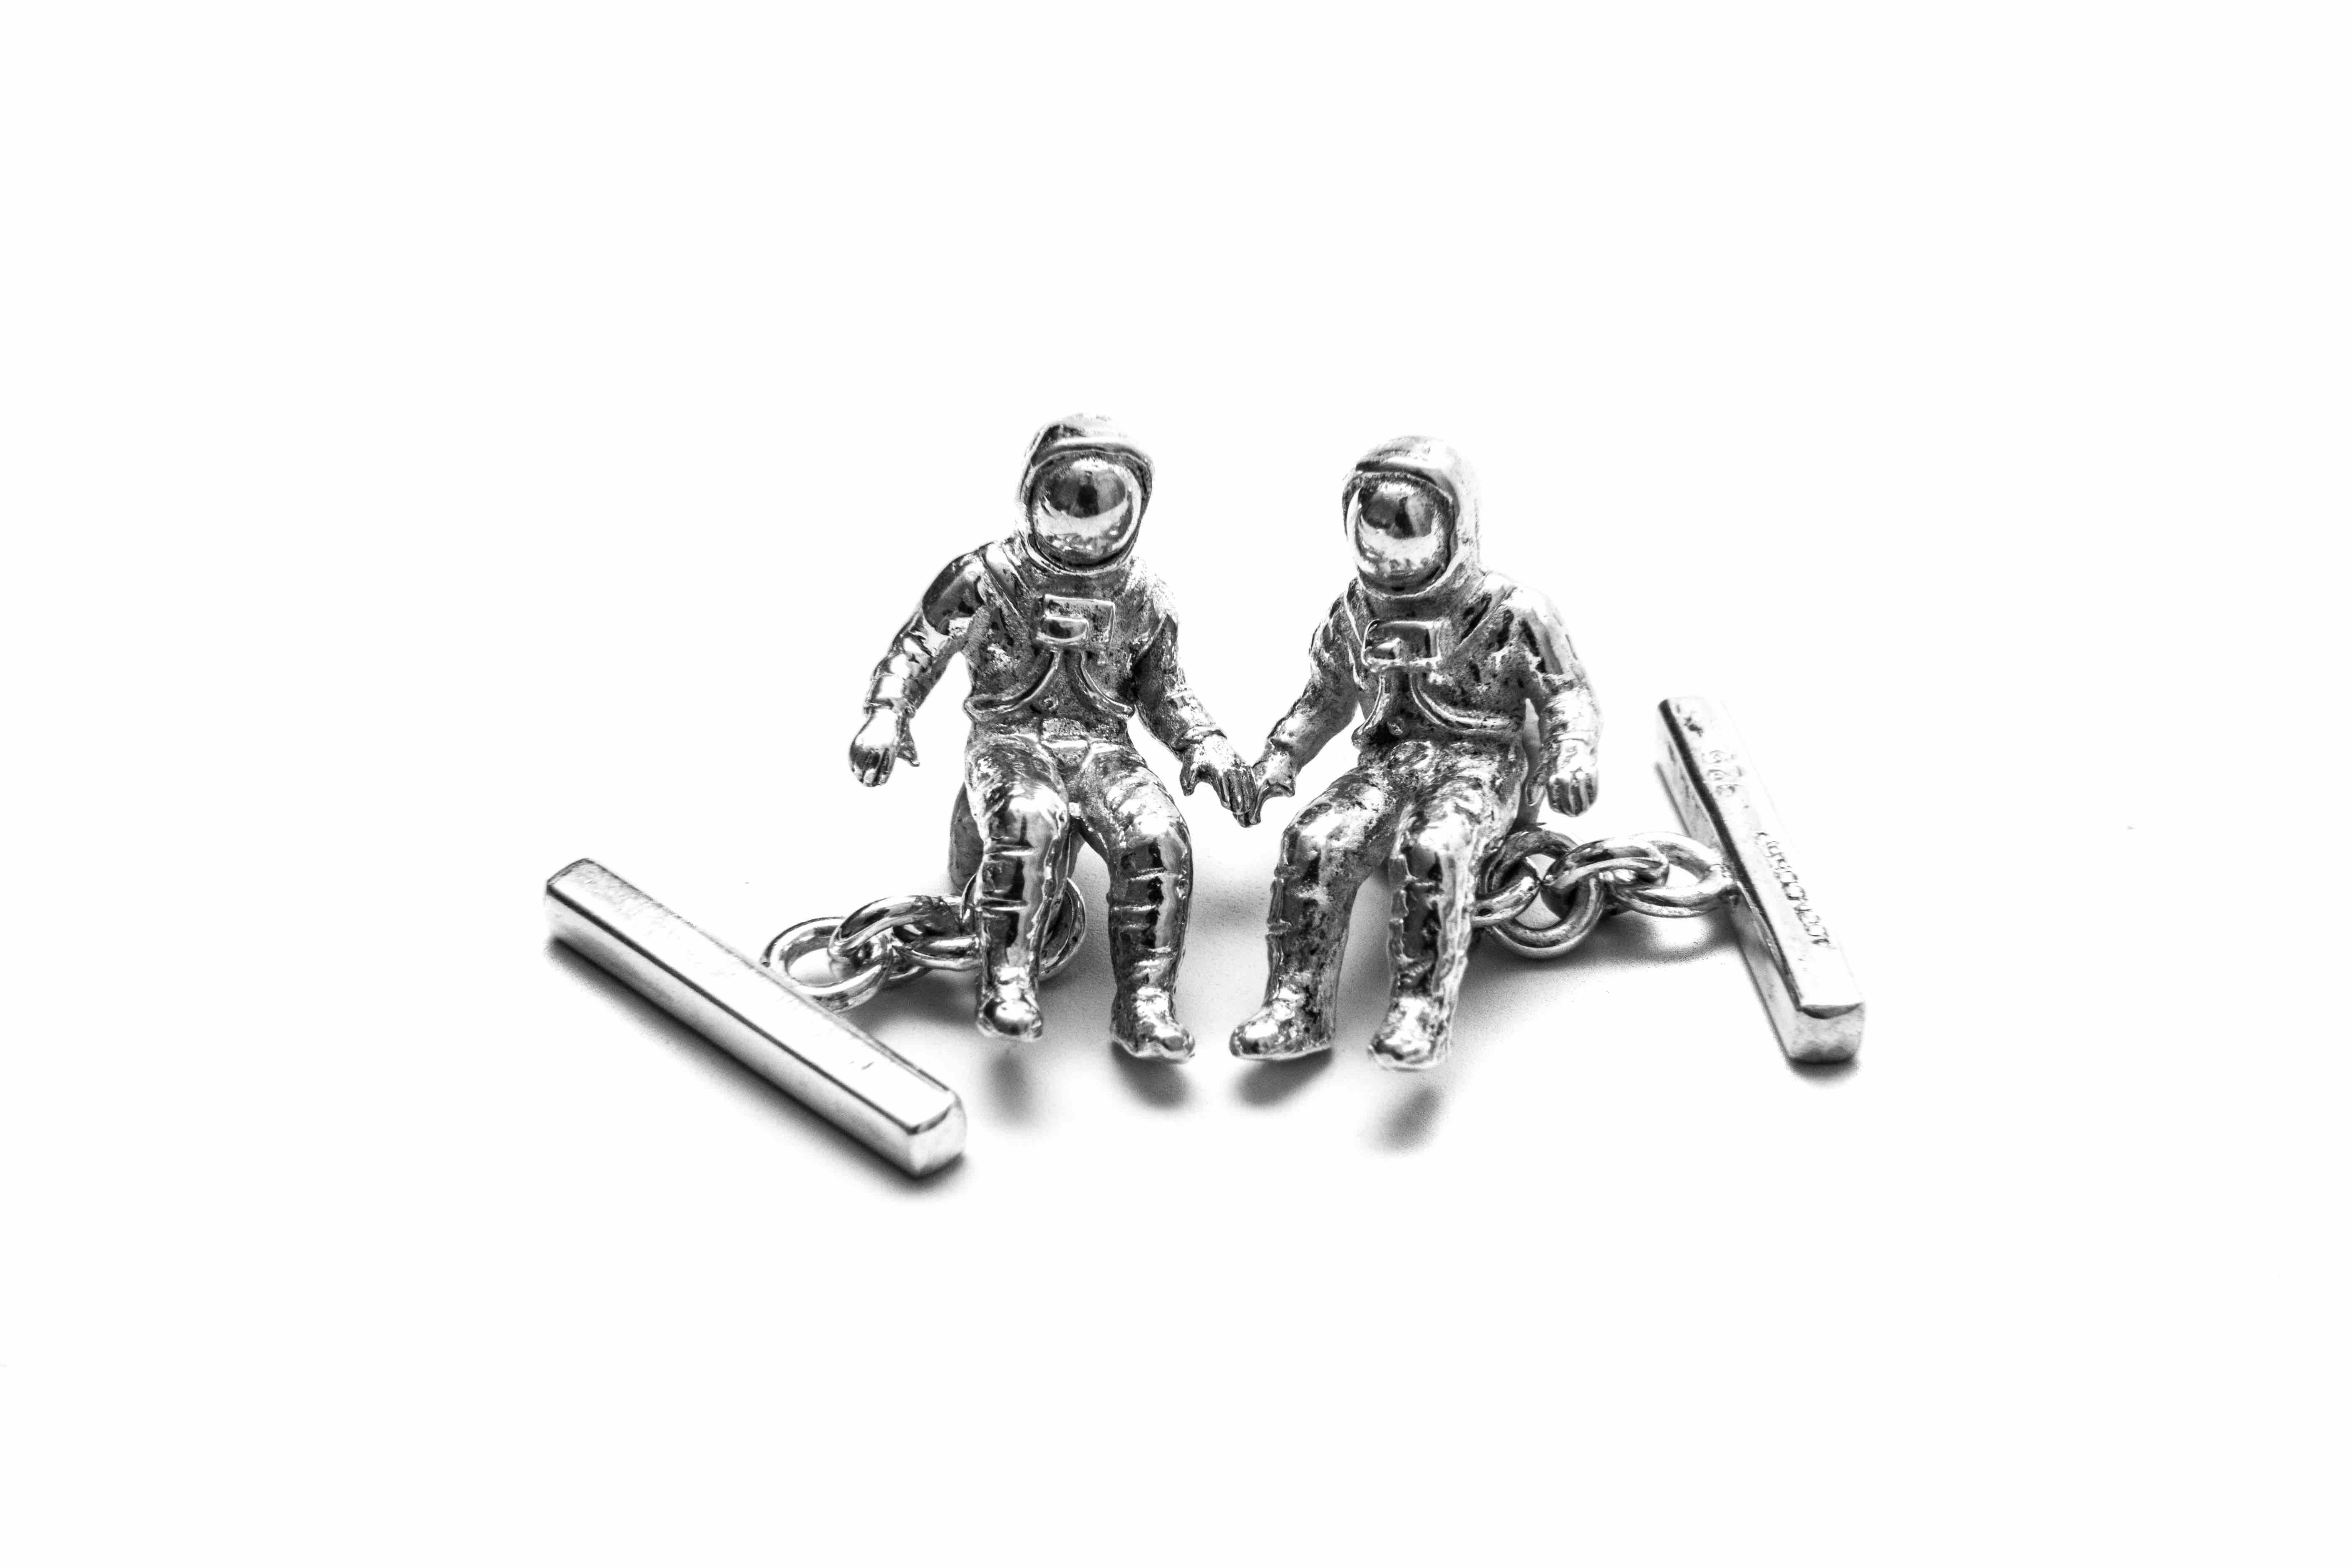 Spaceman cufflinks handmade usingsterling silver. Approximateweight 12g  Packaged in a small hand made wooden box.